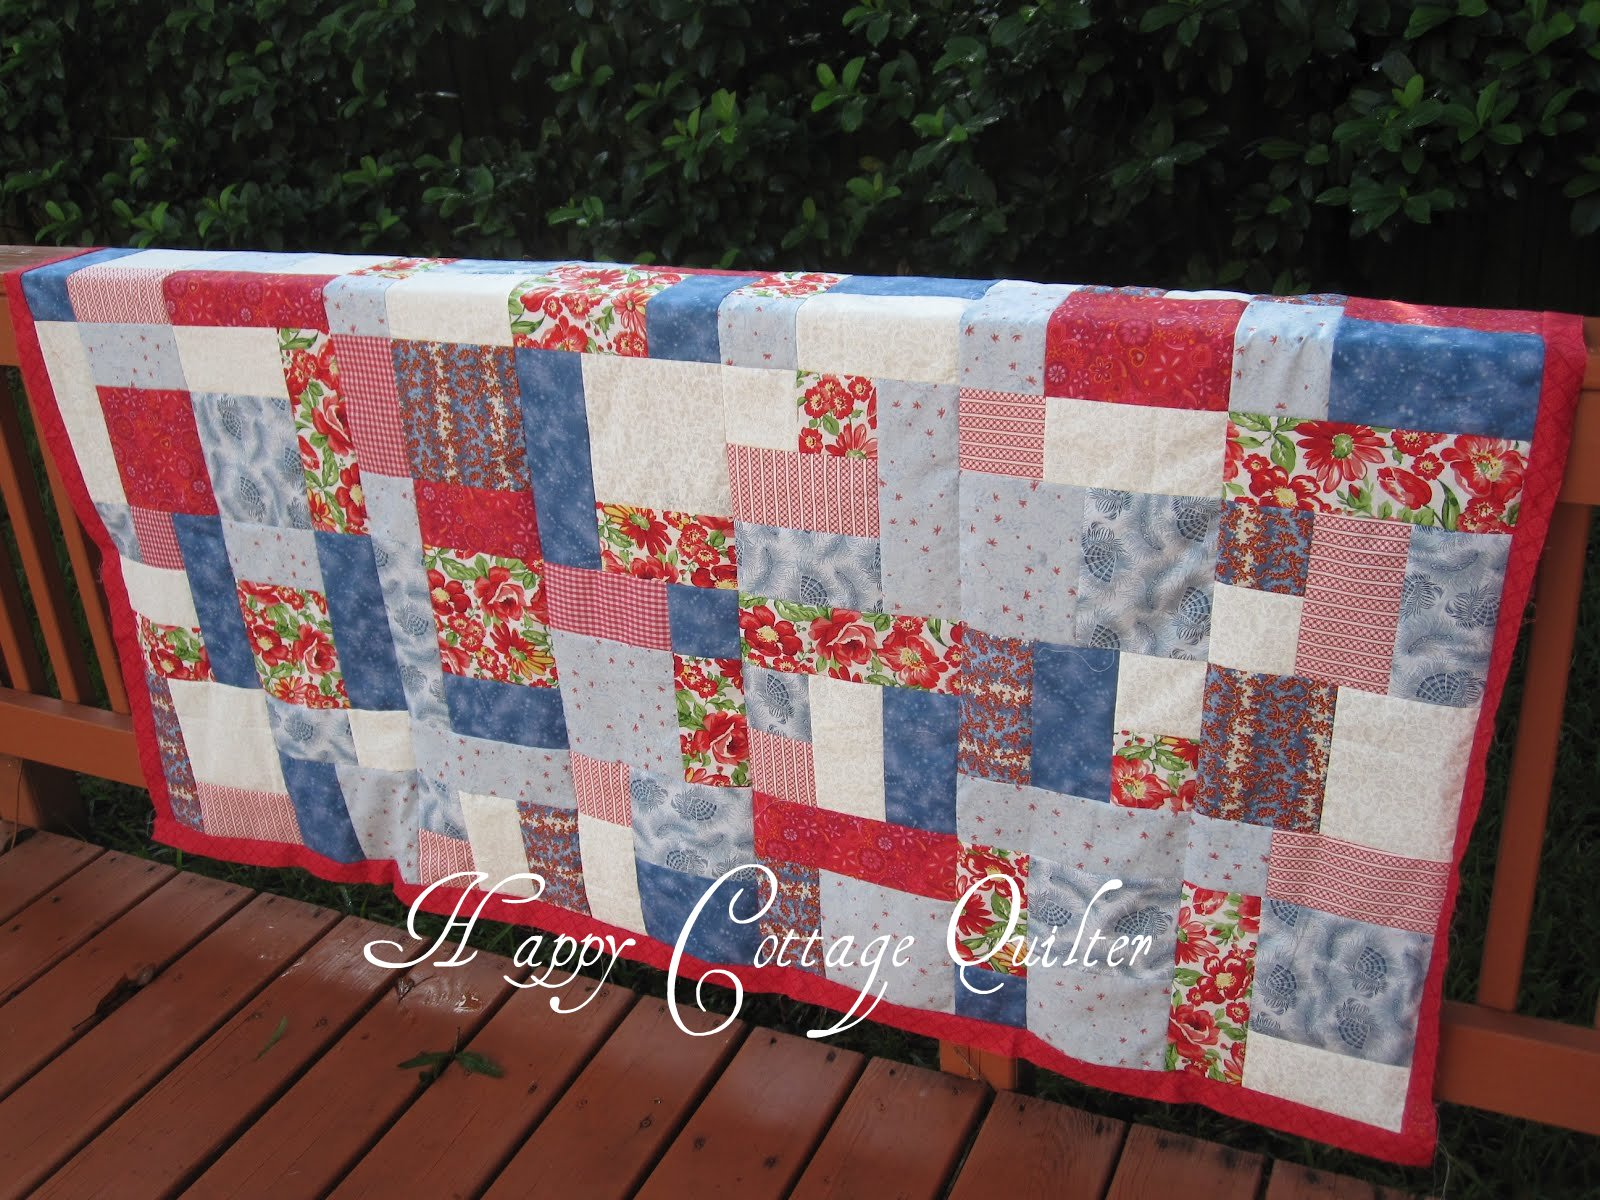 Happy Cottage Quilter Yellow Brick Road Quilt